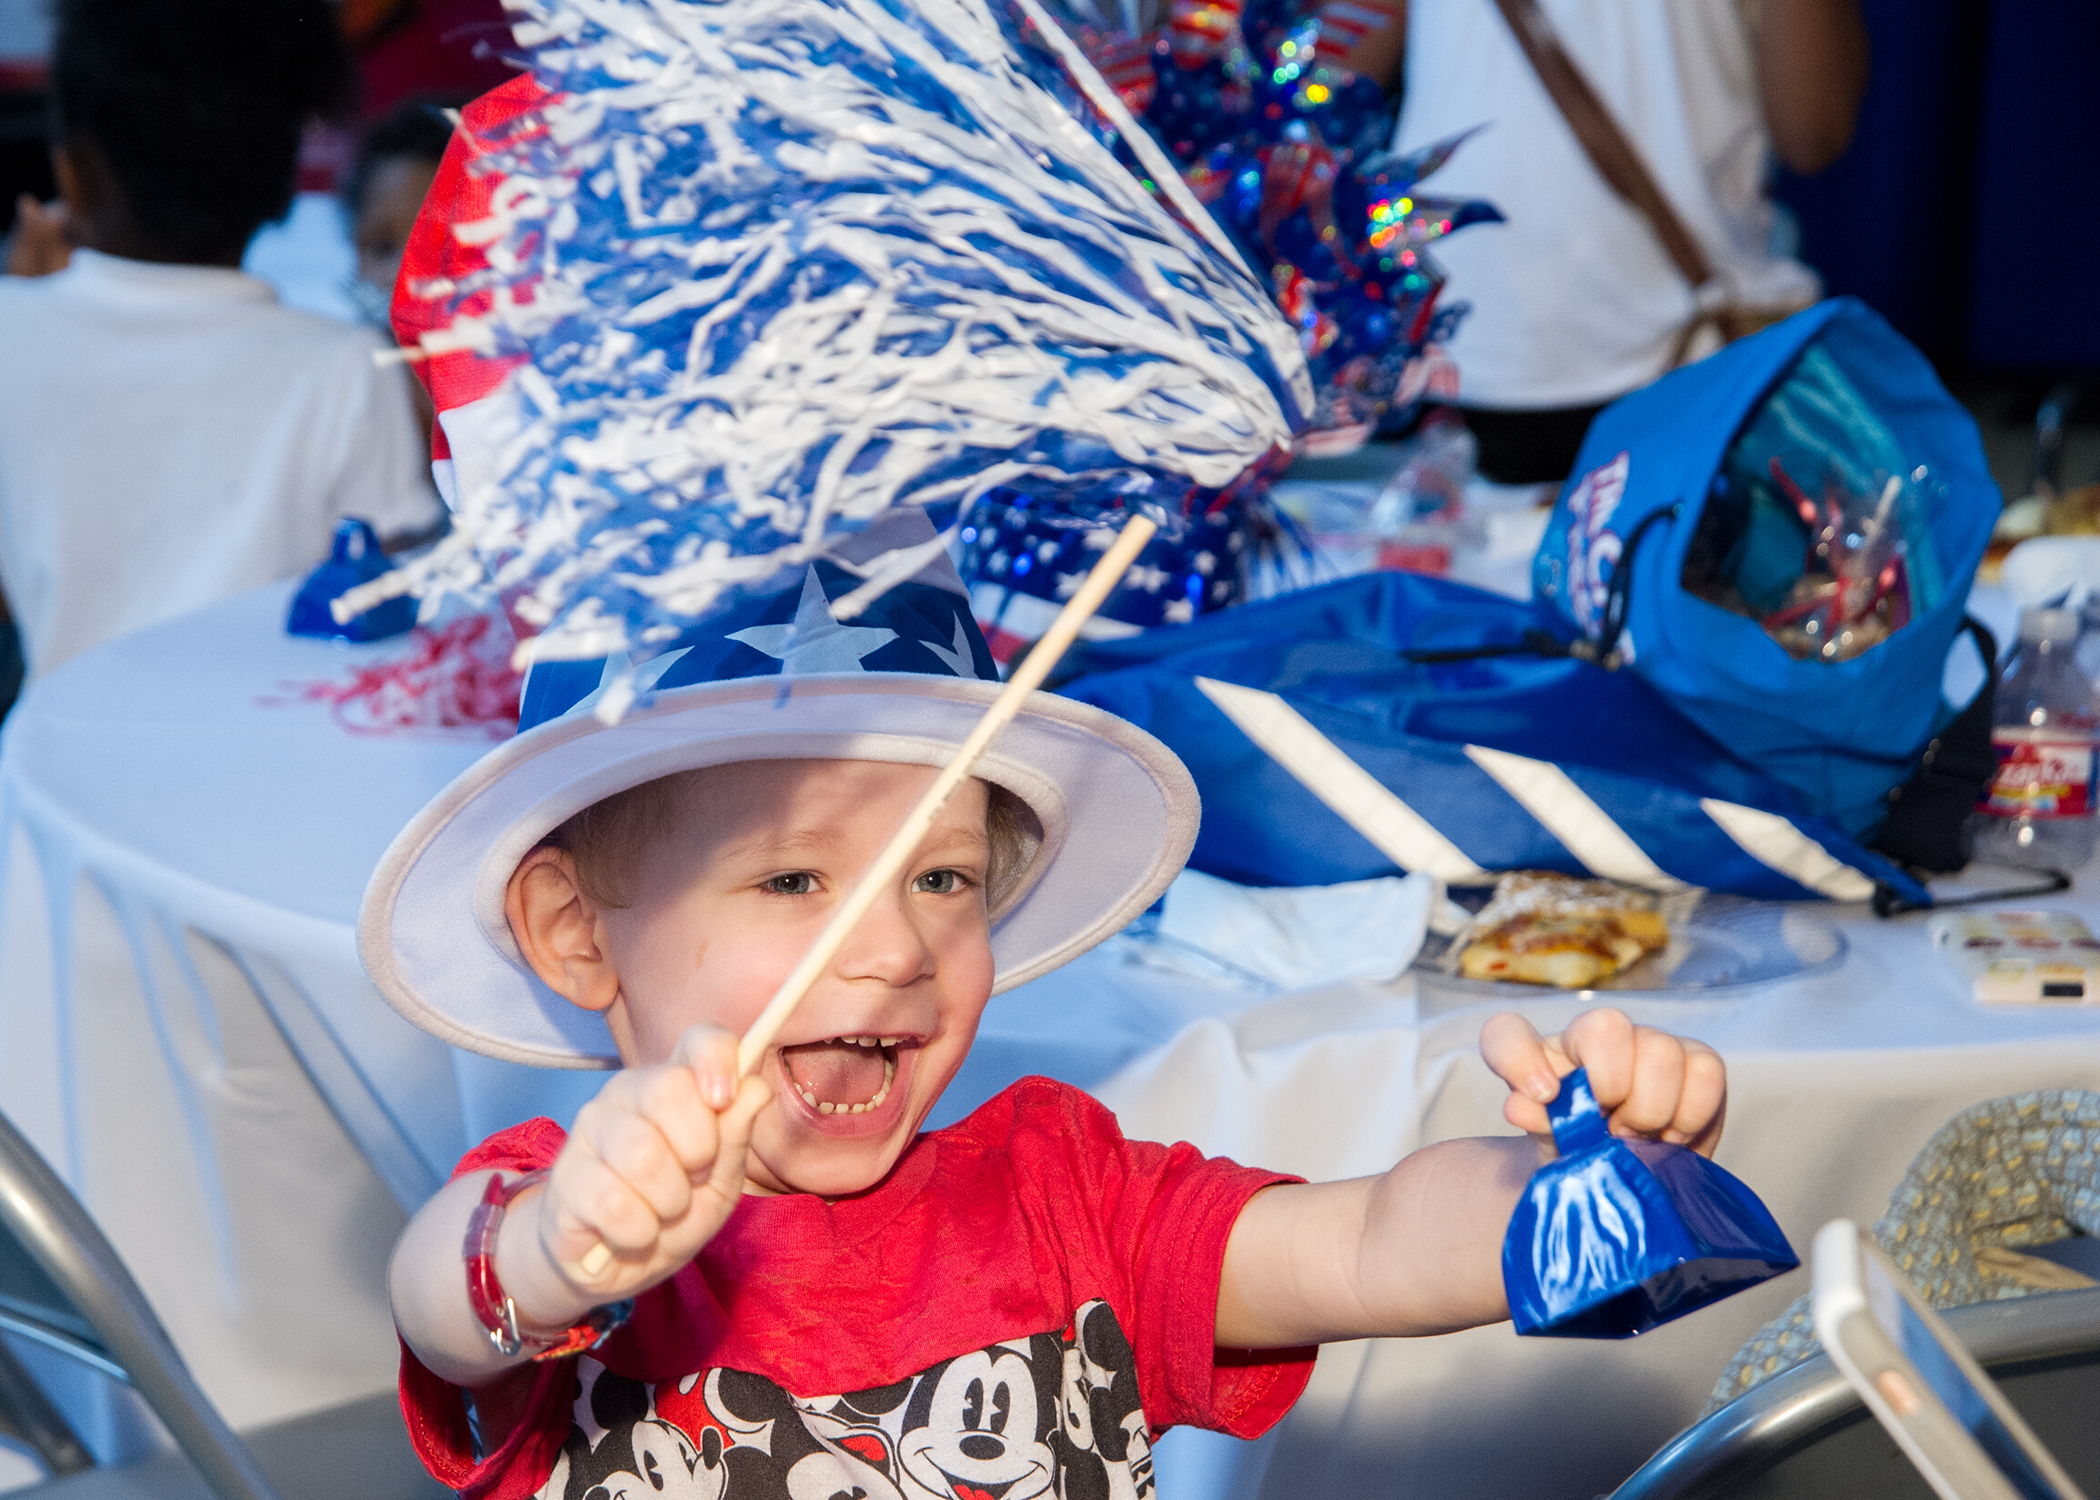 Kids from St. Jude Children's Research Hospital Enjoy Fun #CatinHat4Prez-Themed Activities during Carnival Cruise Line's Annual 'Head of State Play Date'